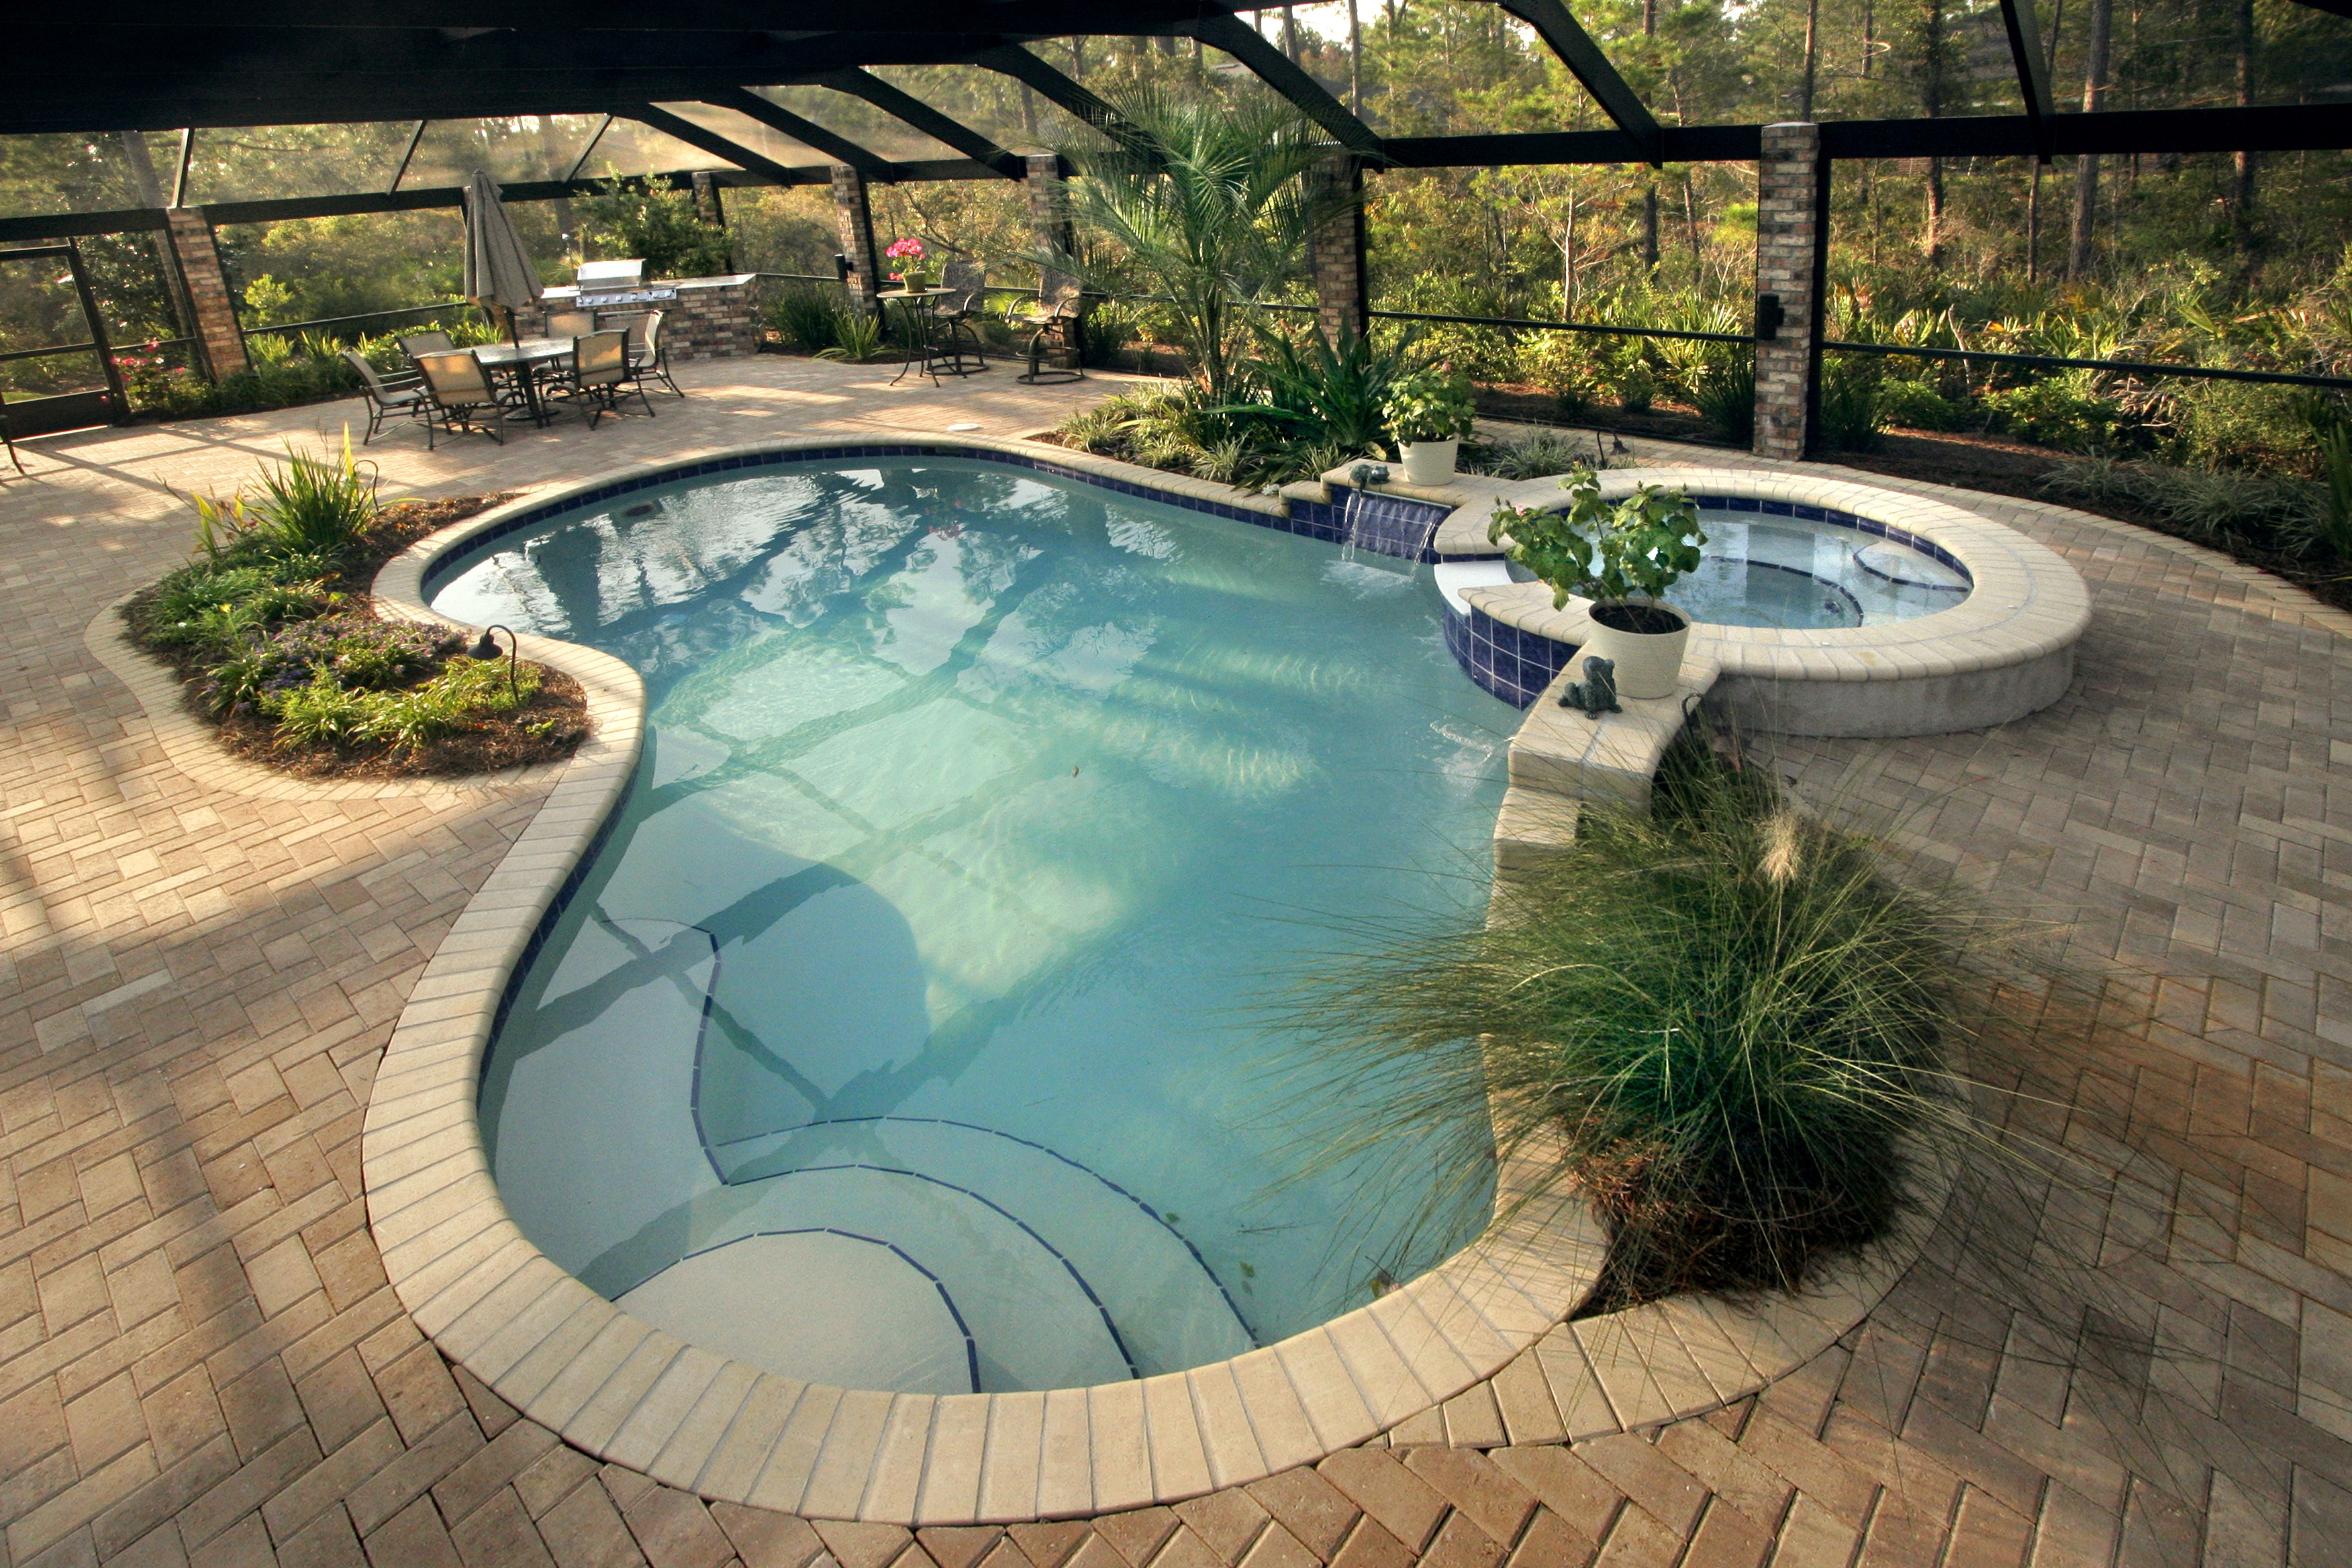 33 Jacuzzi Pools For Your Home  The WoW Style